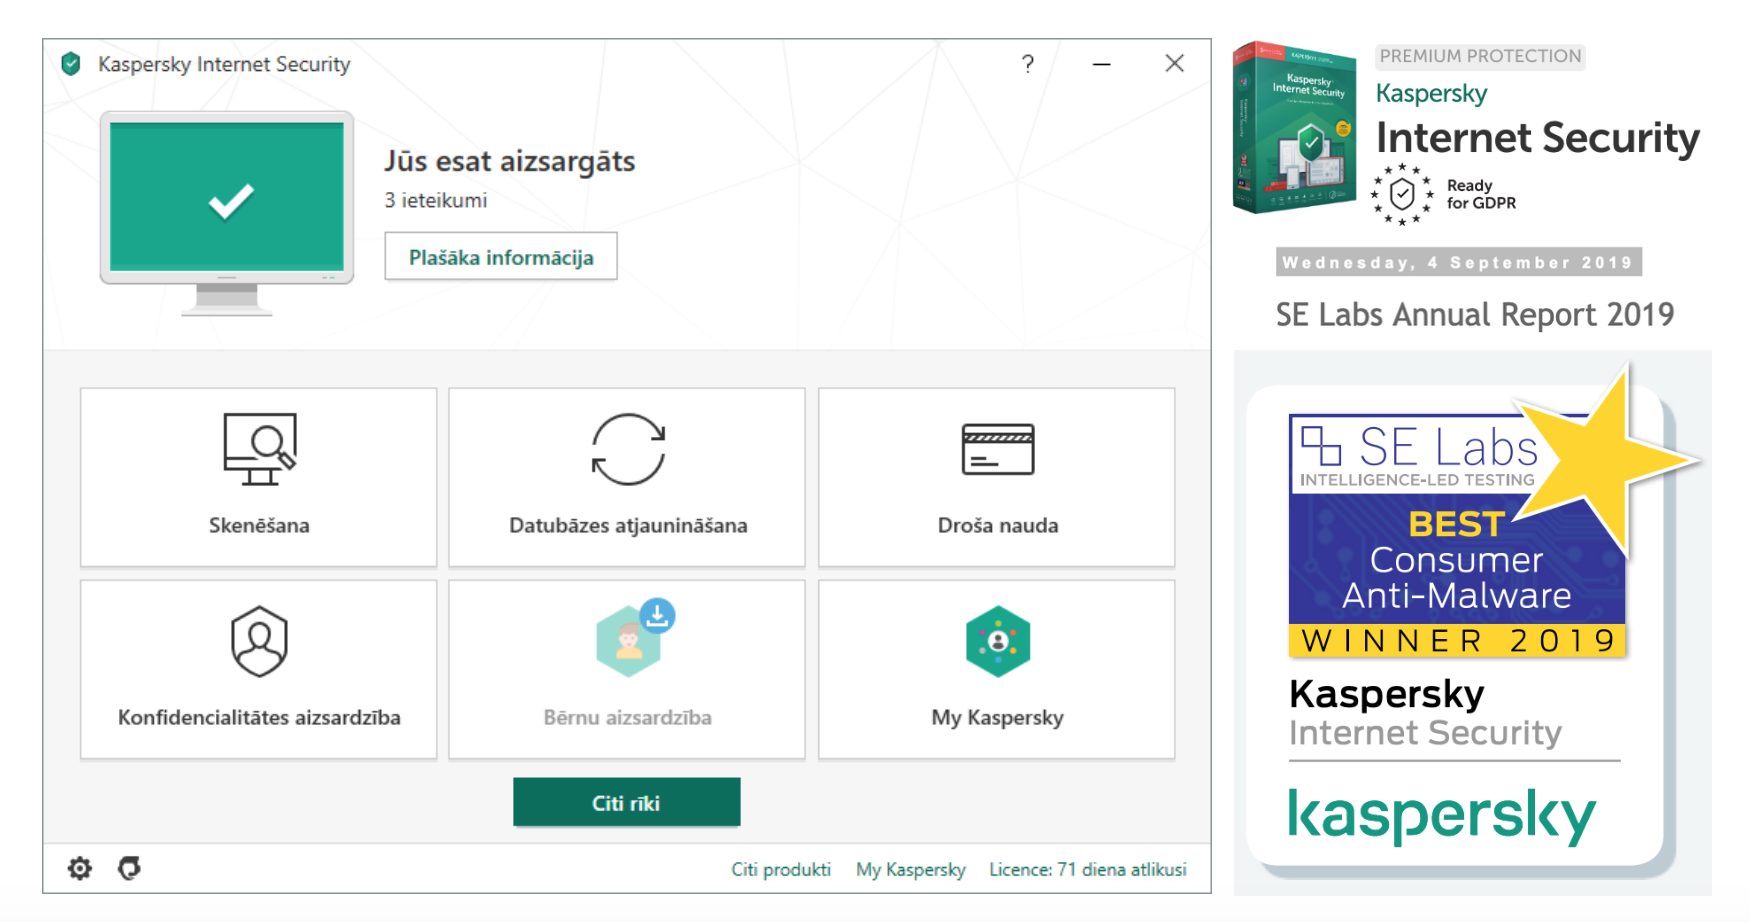 Kaspersky-Internet-Security-best-consumer-anti-malware-2019